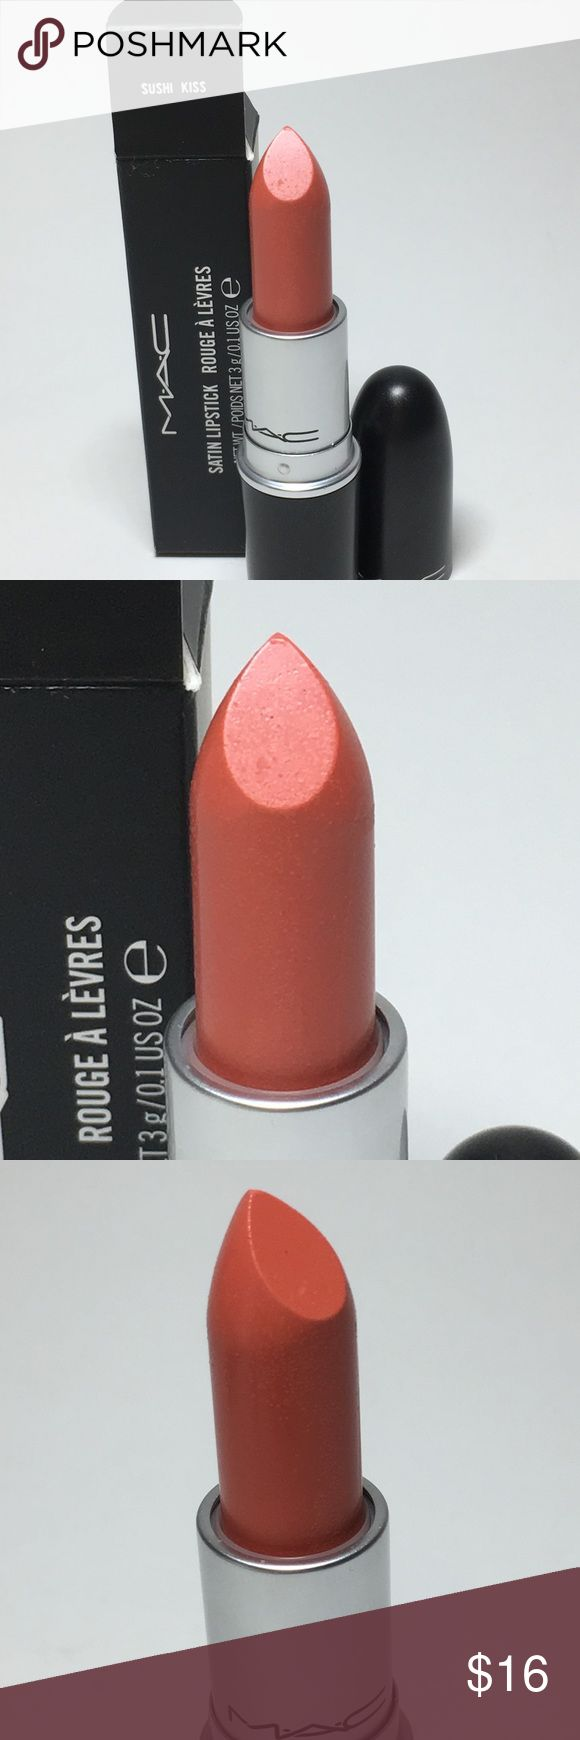 NIB Mac Sushi Kiss A23 Satin 100% Auth NIB Mac Cosmetics Sushi Kiss Batch code: A23. Satin. *Vanilla smell fading. 100% Authentic. Brand new, never used or tested. Just been sitting in my makeup drawer. Please see pictures as this is the actual item you will receive. Please feel free to ask any questions and I will get back to you as soon as possible. Thank you! MAC Cosmetics Makeup Lipstick